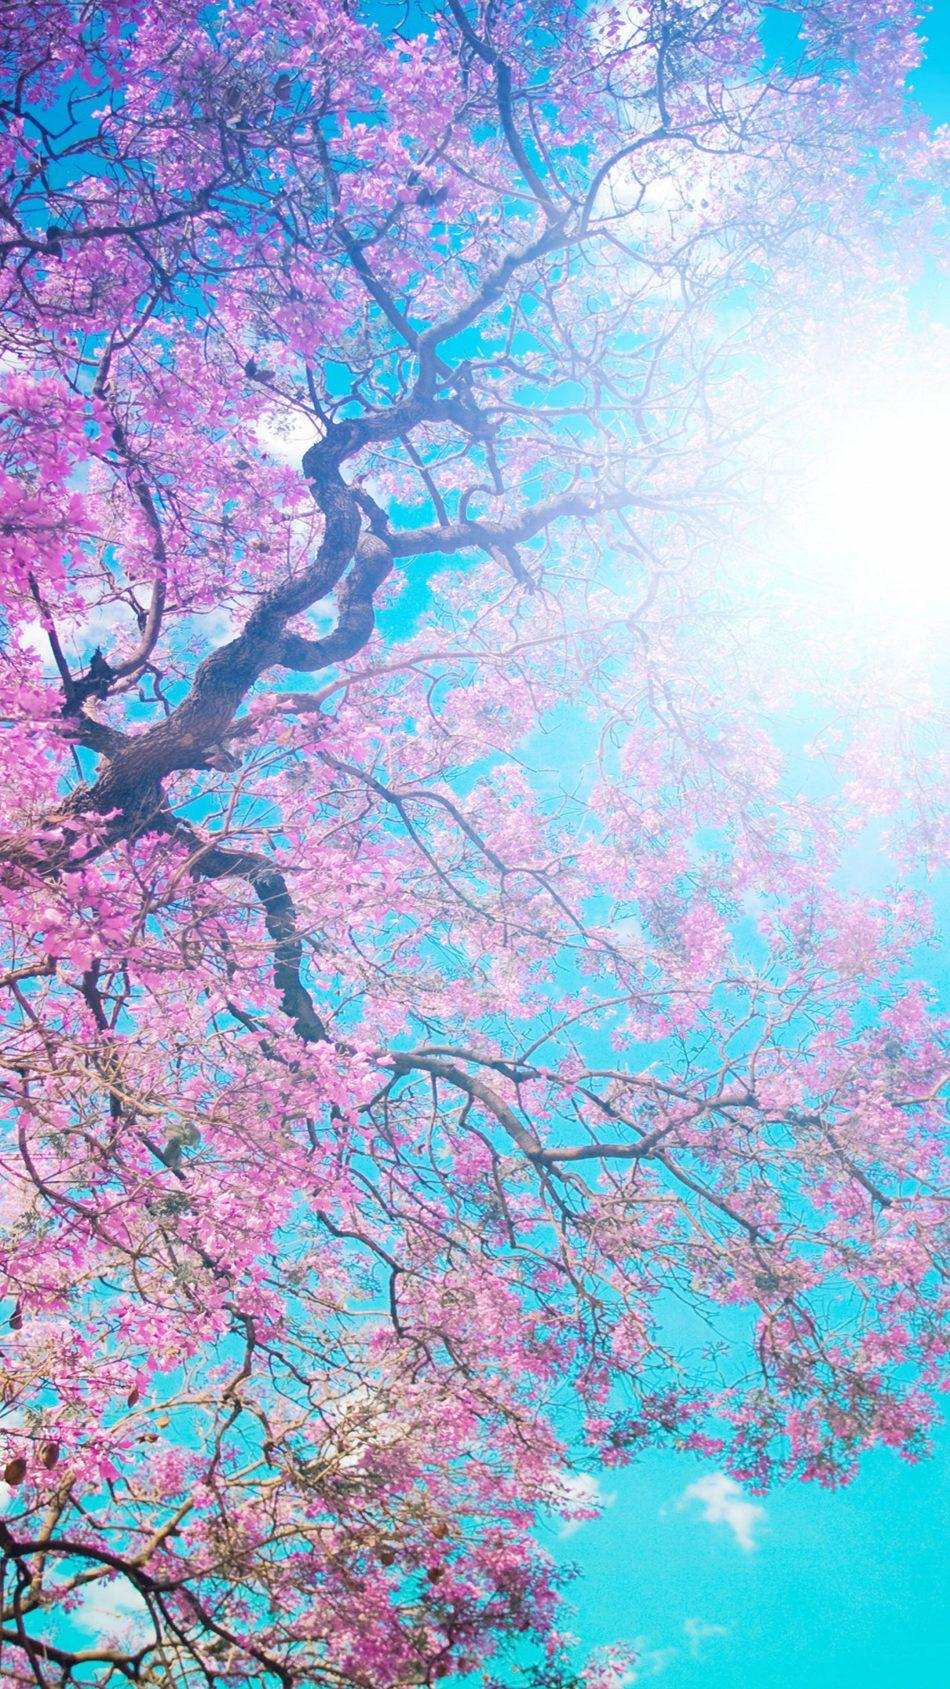 Tree Sunny Spring Day Free 4K Ultra HD Mobile Wallpapers